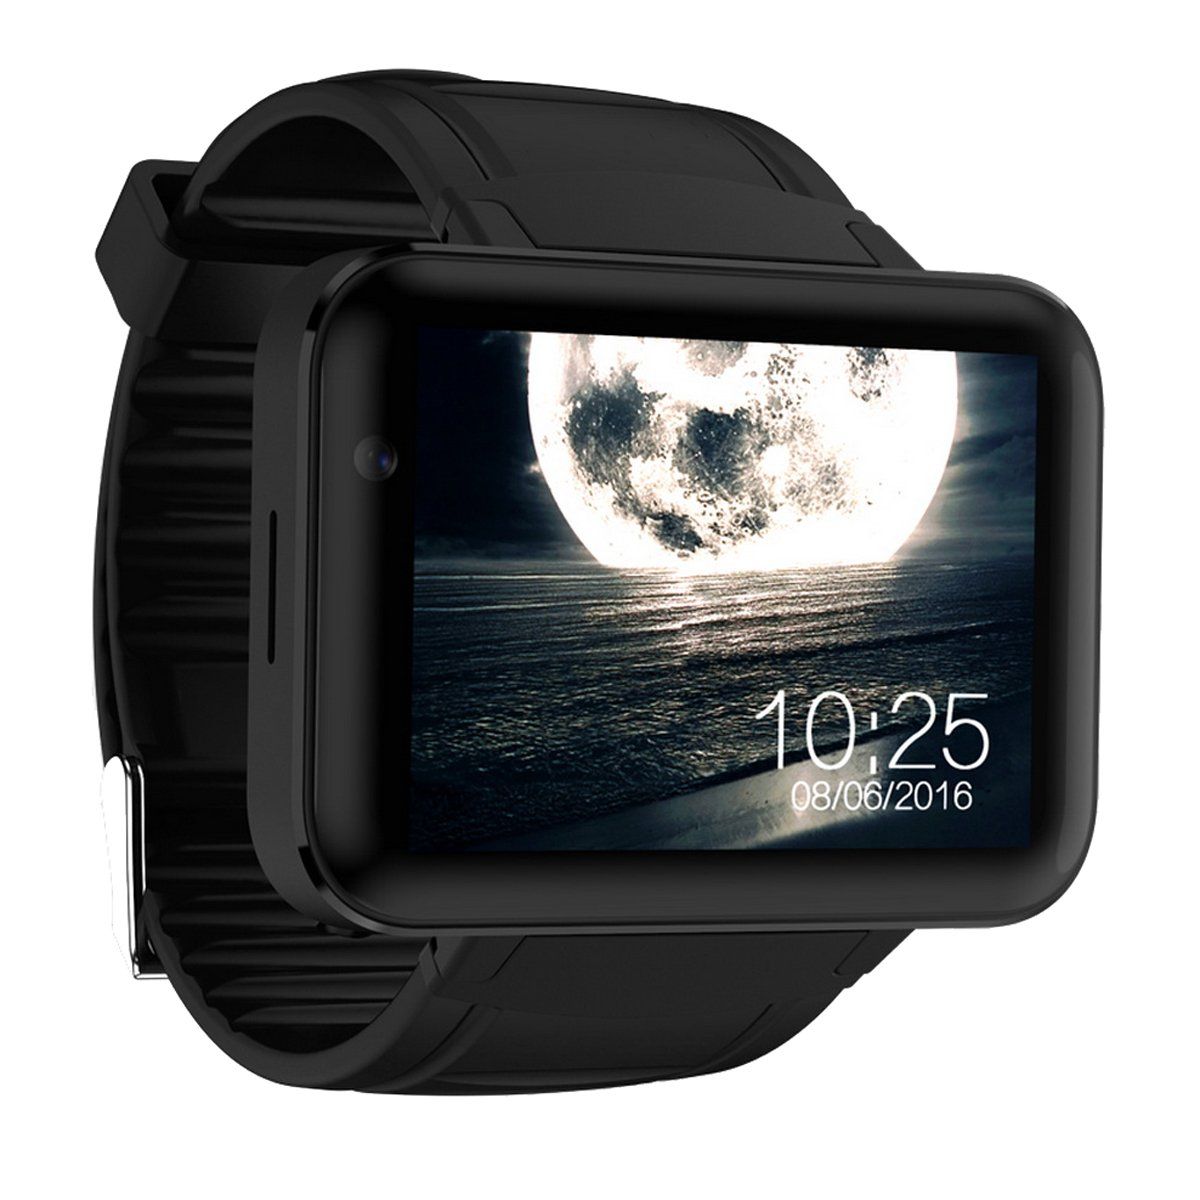 DM98 Android 3G Smart Watch Phone with 900mAh Battery - Black